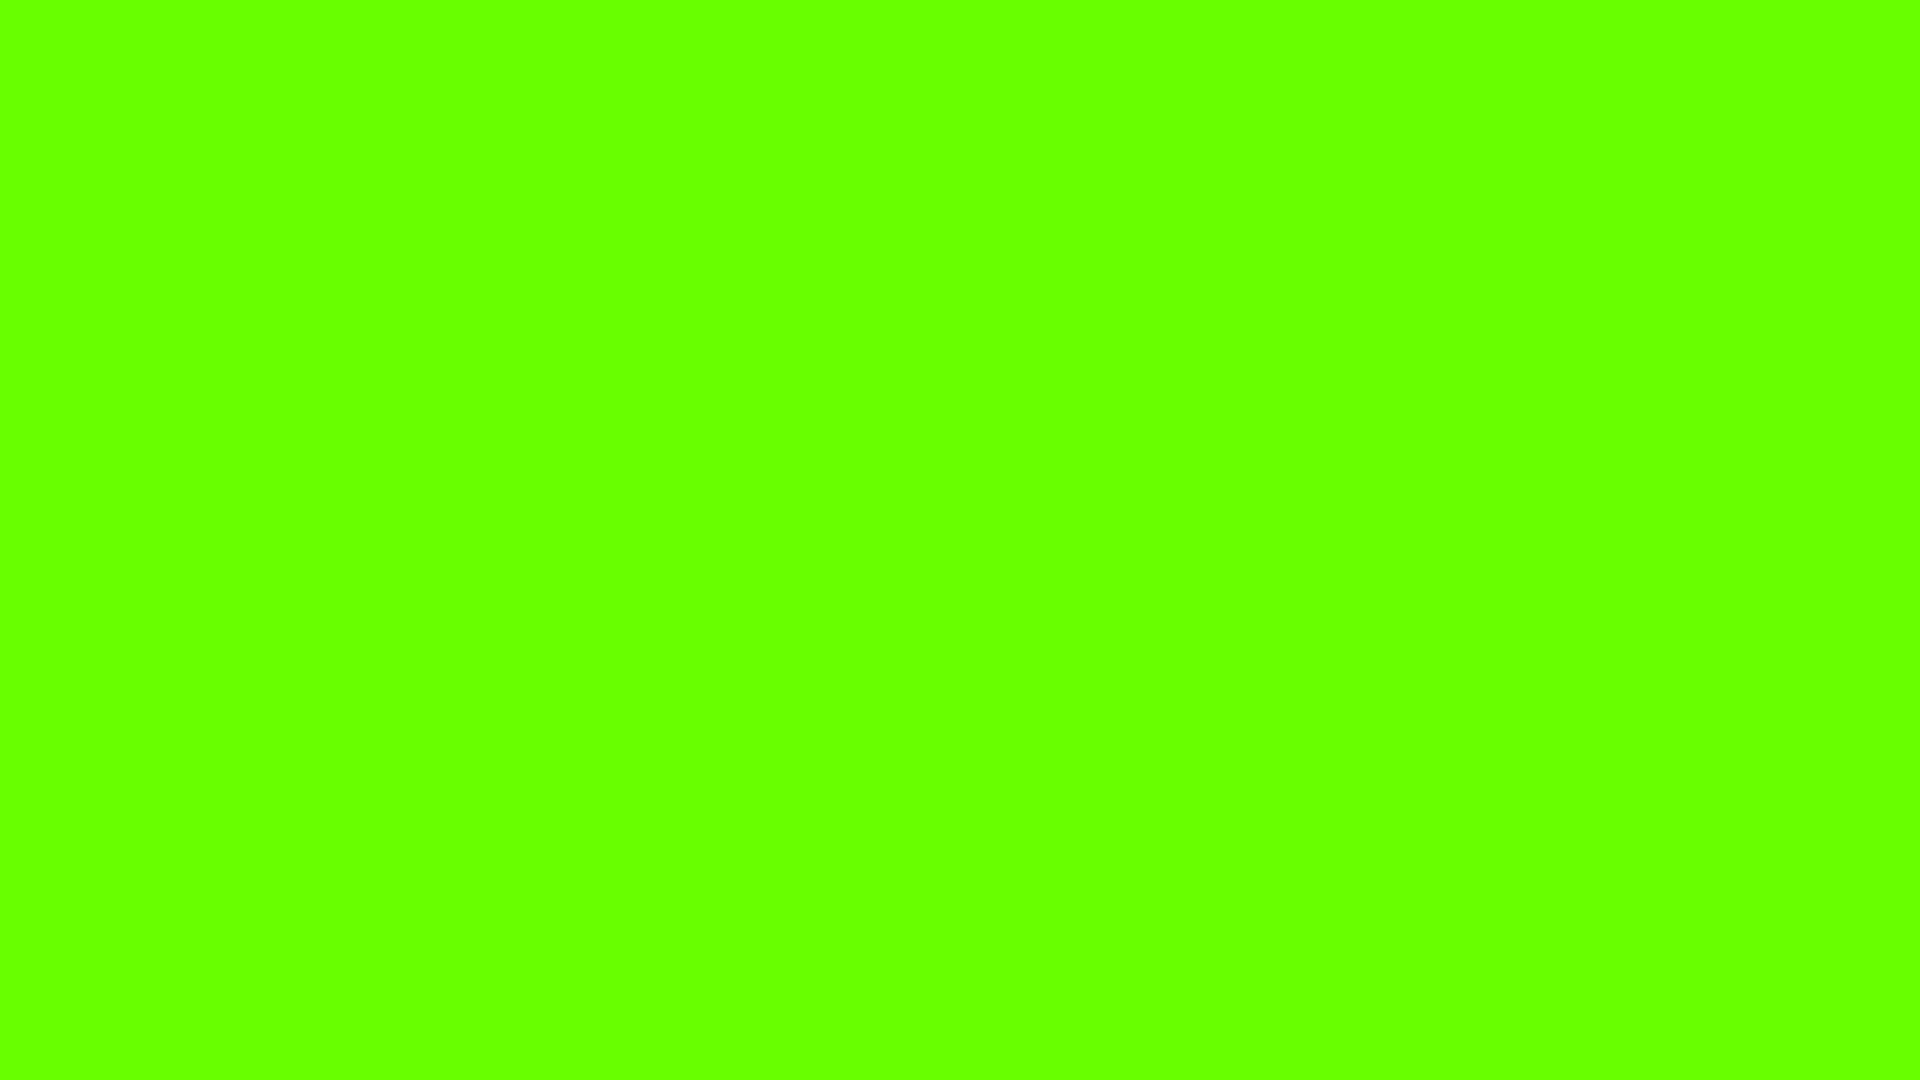 Lime Green Backgrounds 55 Pictures: Lime Green Backgrounds (54+ Images